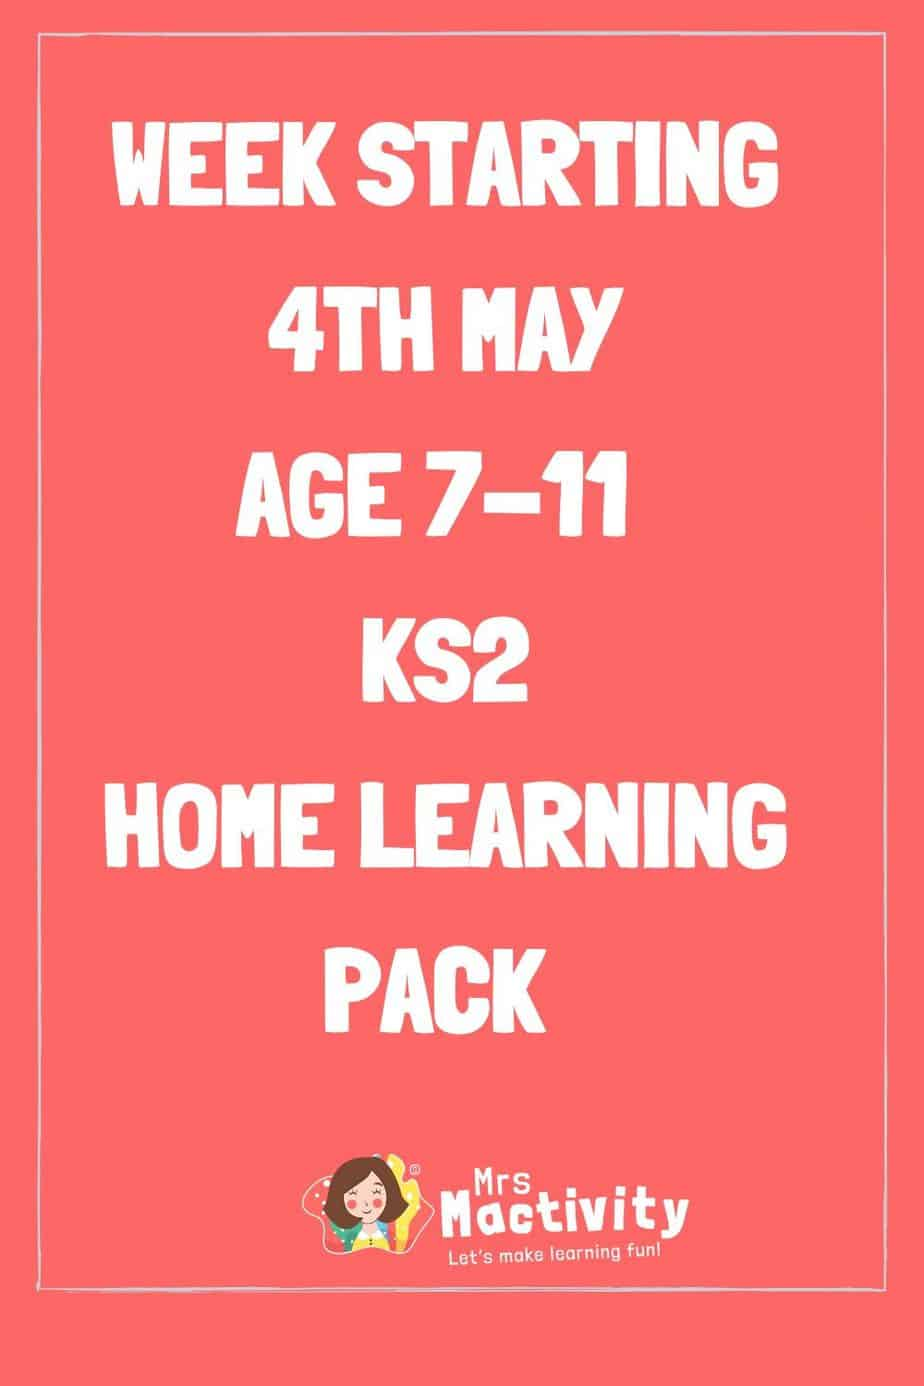 4th May Lower Key Stage (Age 7-11) Weekly Home Learning Pack